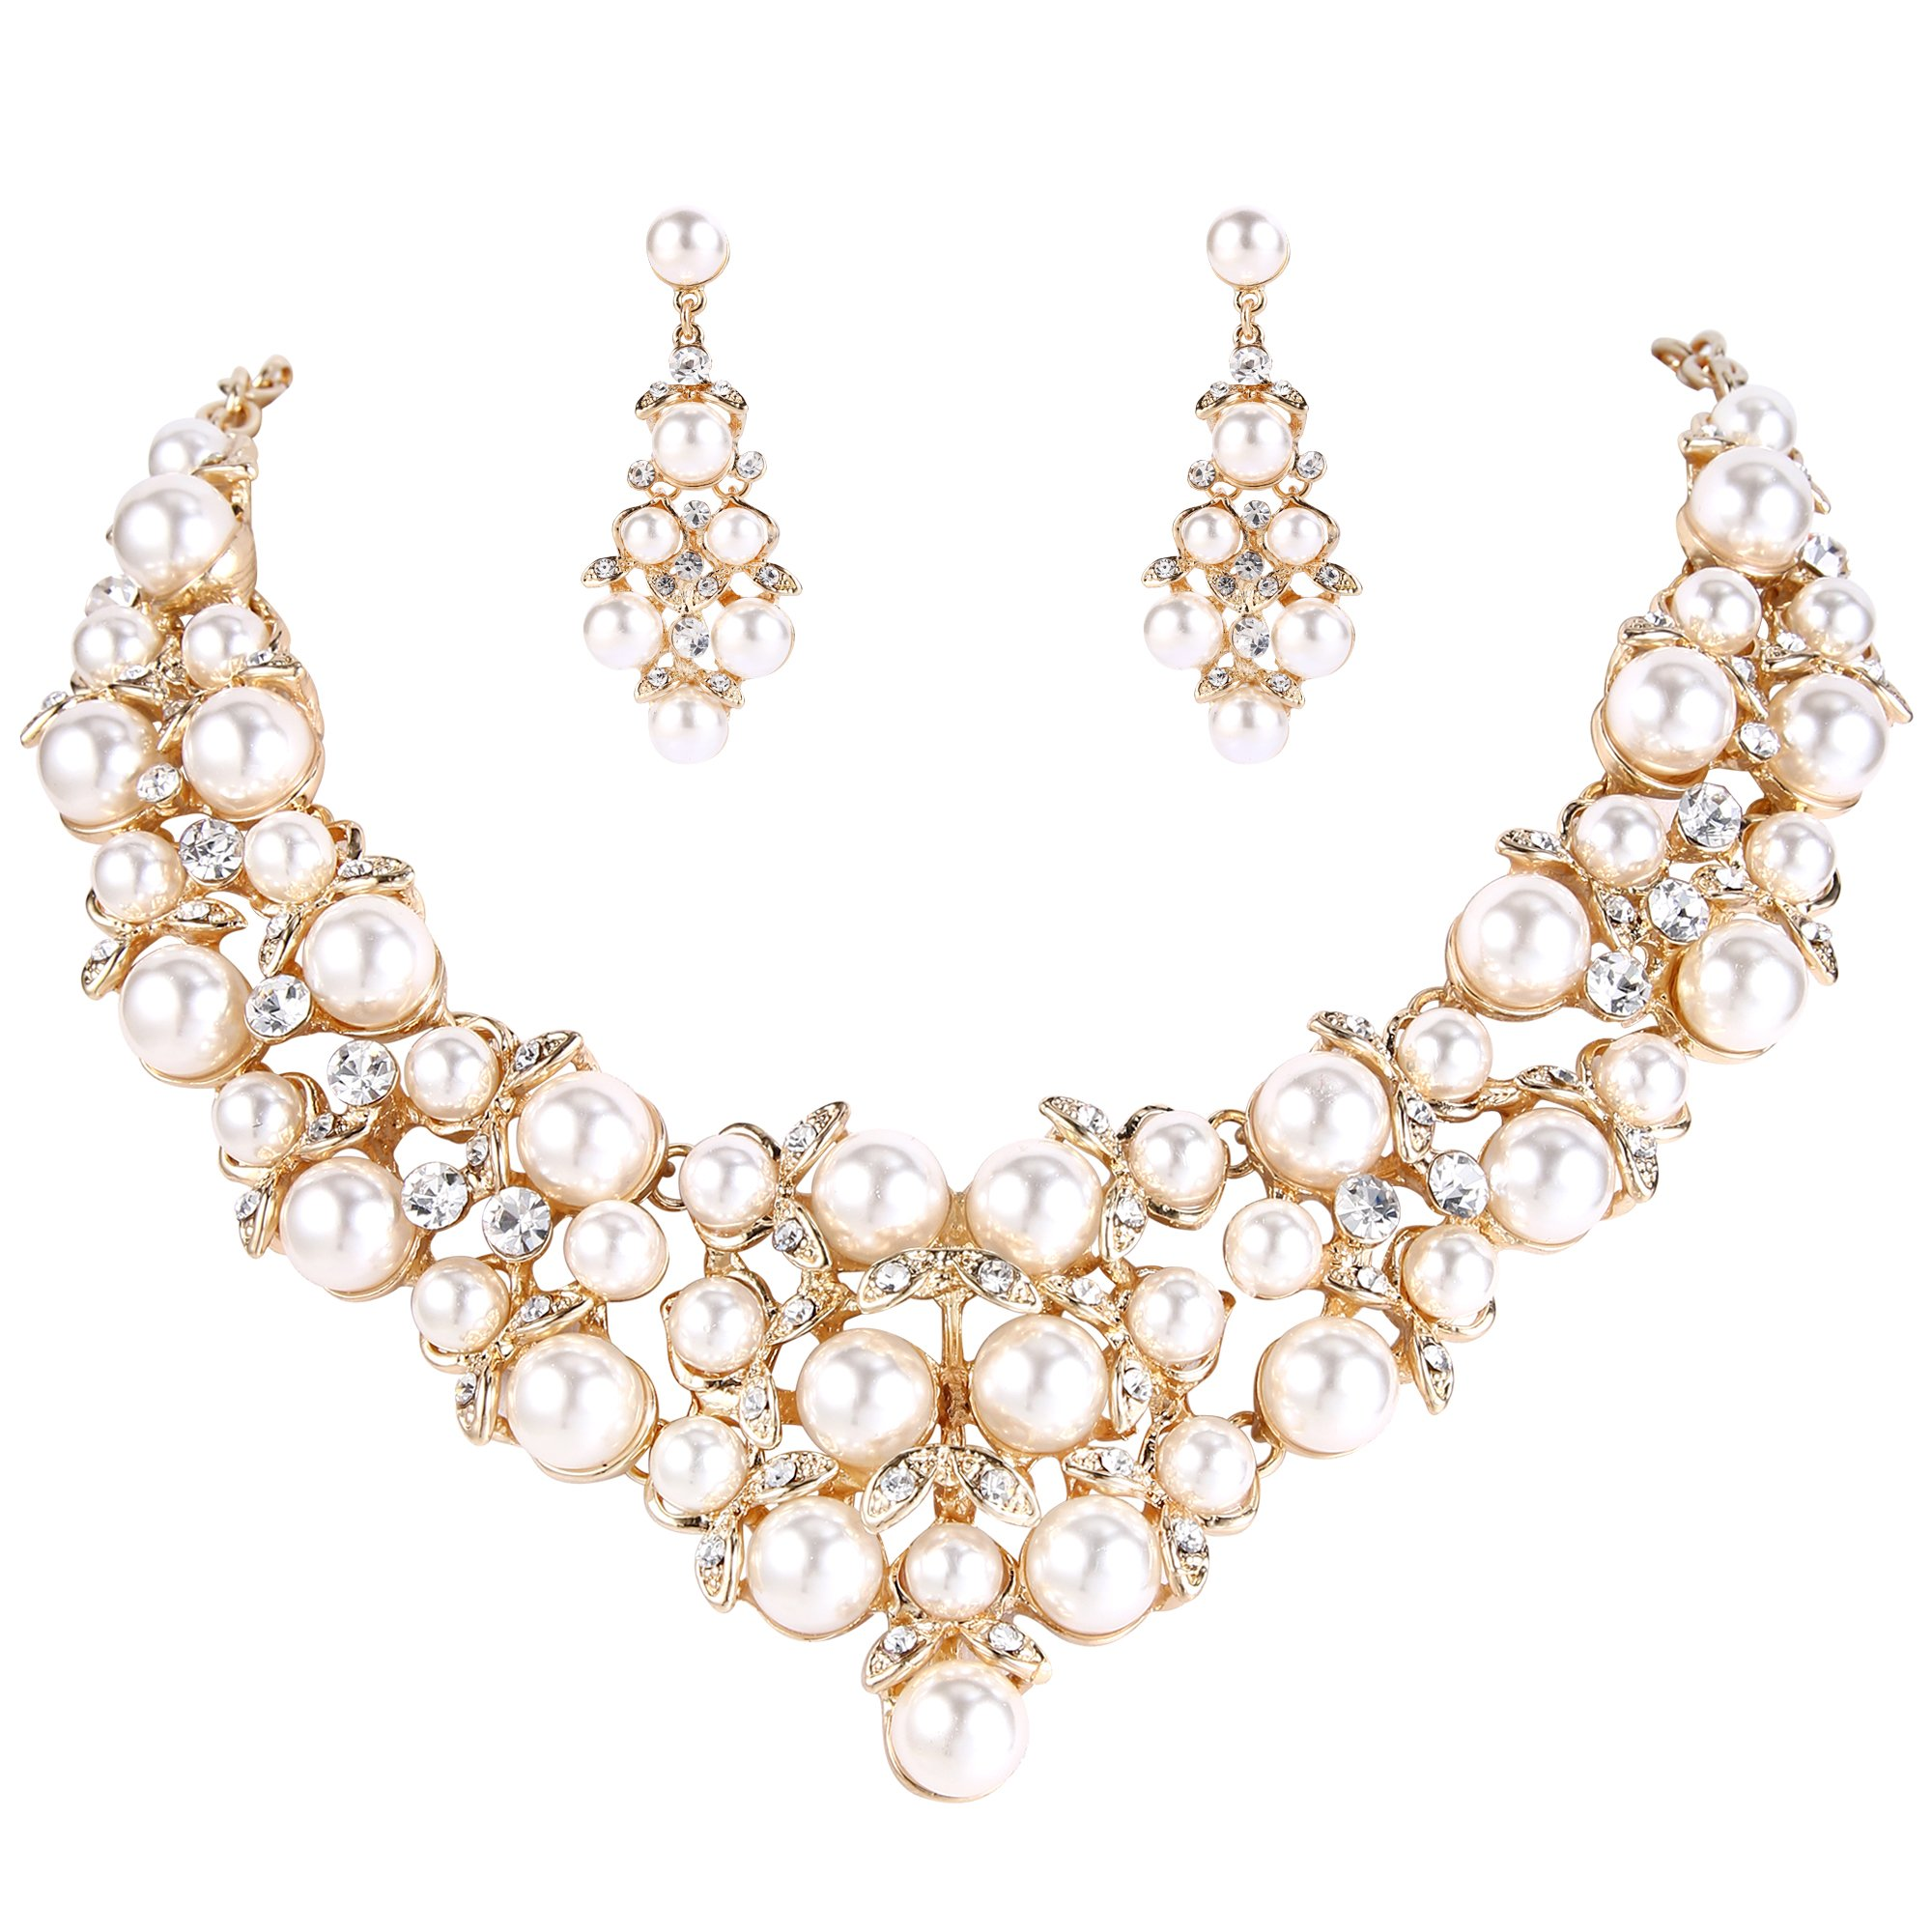 BriLove Women's Wedding Bridal Simulated Pearl Statement Necklace Dangle Earrings Jewelry Set with Crystal Cluster Clear Gold-Toned